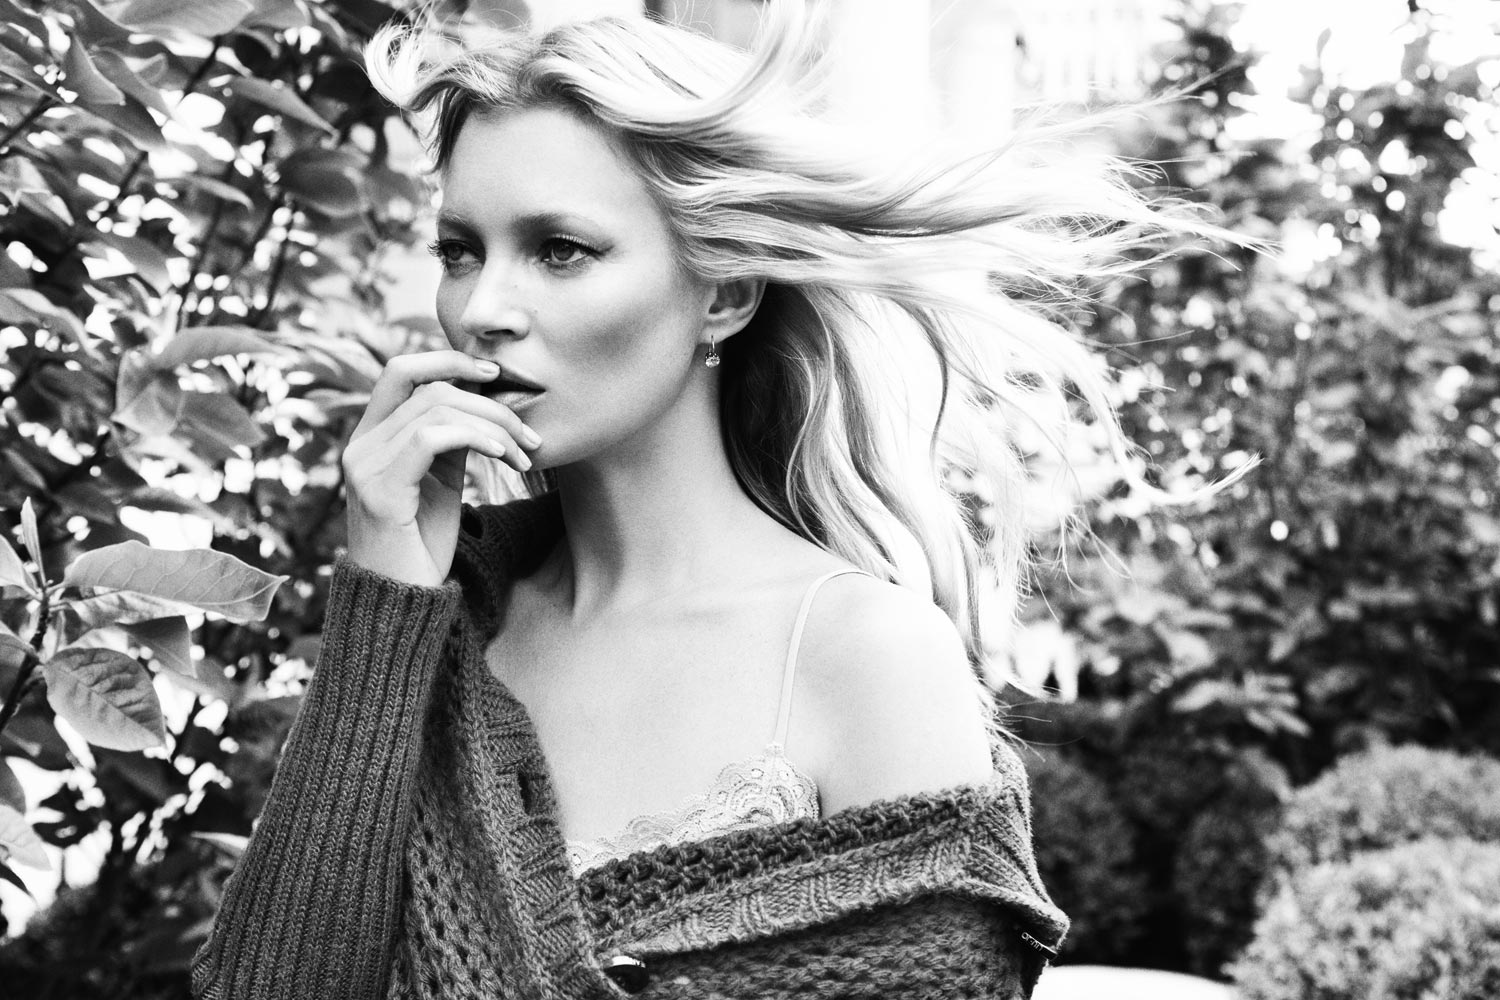 Kate Moss for Liu Jo Spring 2012 Campaign advise